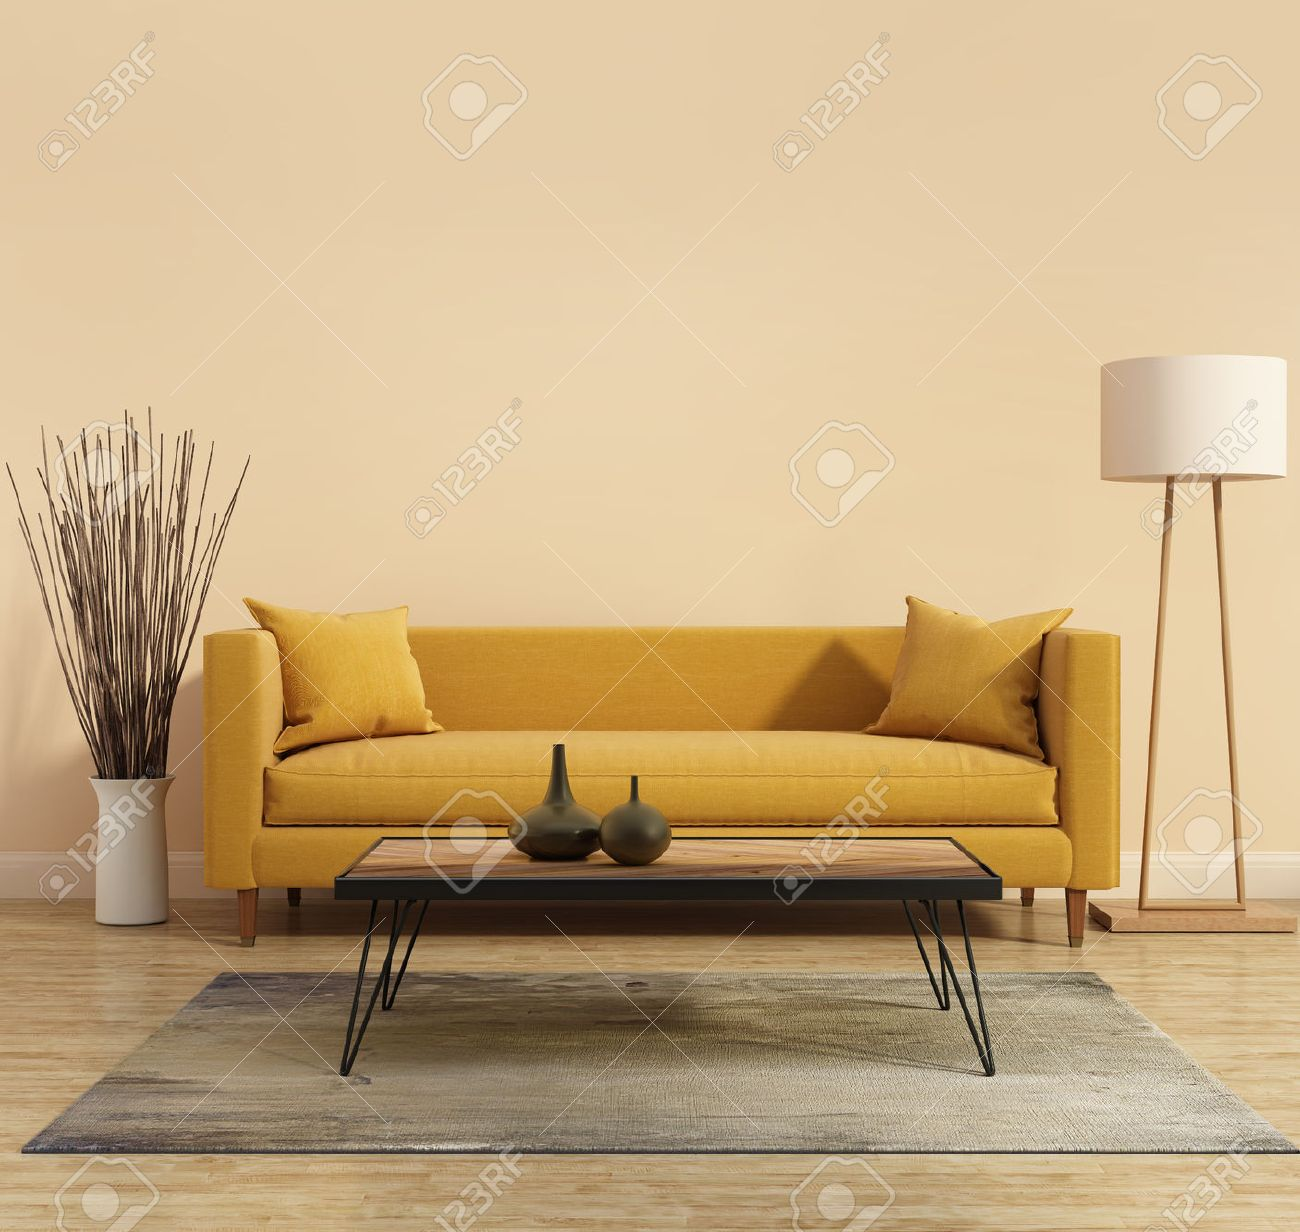 Modern Interior With A Yellow Sofa In The Living Room Stock Photo Picture And Royalty Free Image Image 37935067